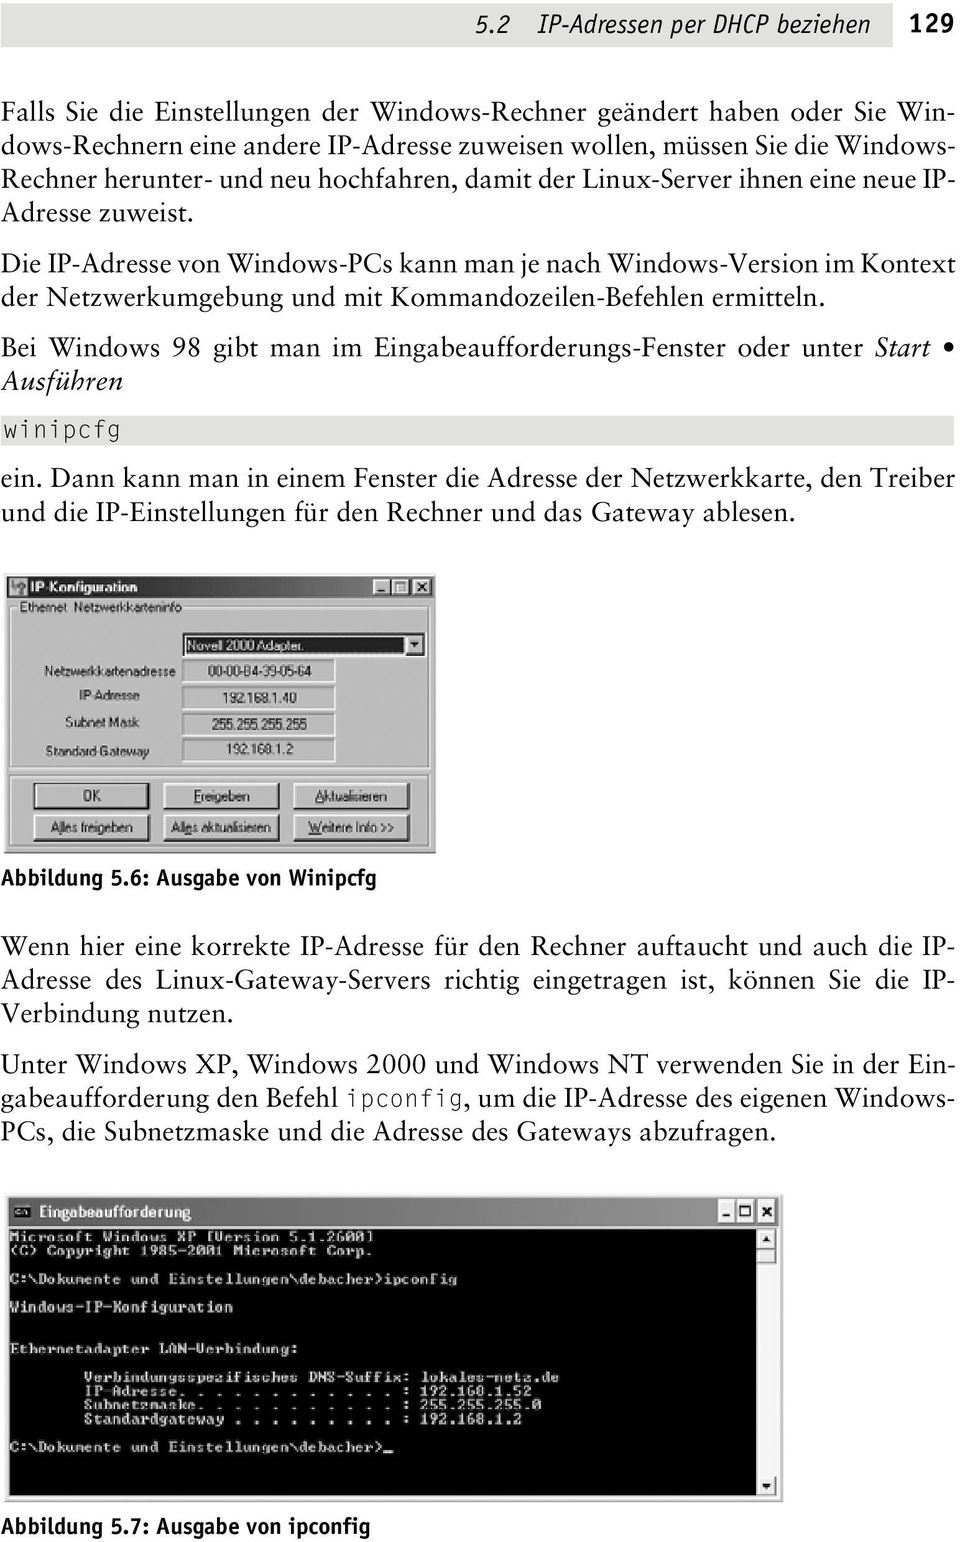 Die IP-Adresse von Windows-PCs kann man je nach Windows-Version im Kontext der Netzwerkumgebung und mit Kommandozeilen-Befehlen ermitteln.